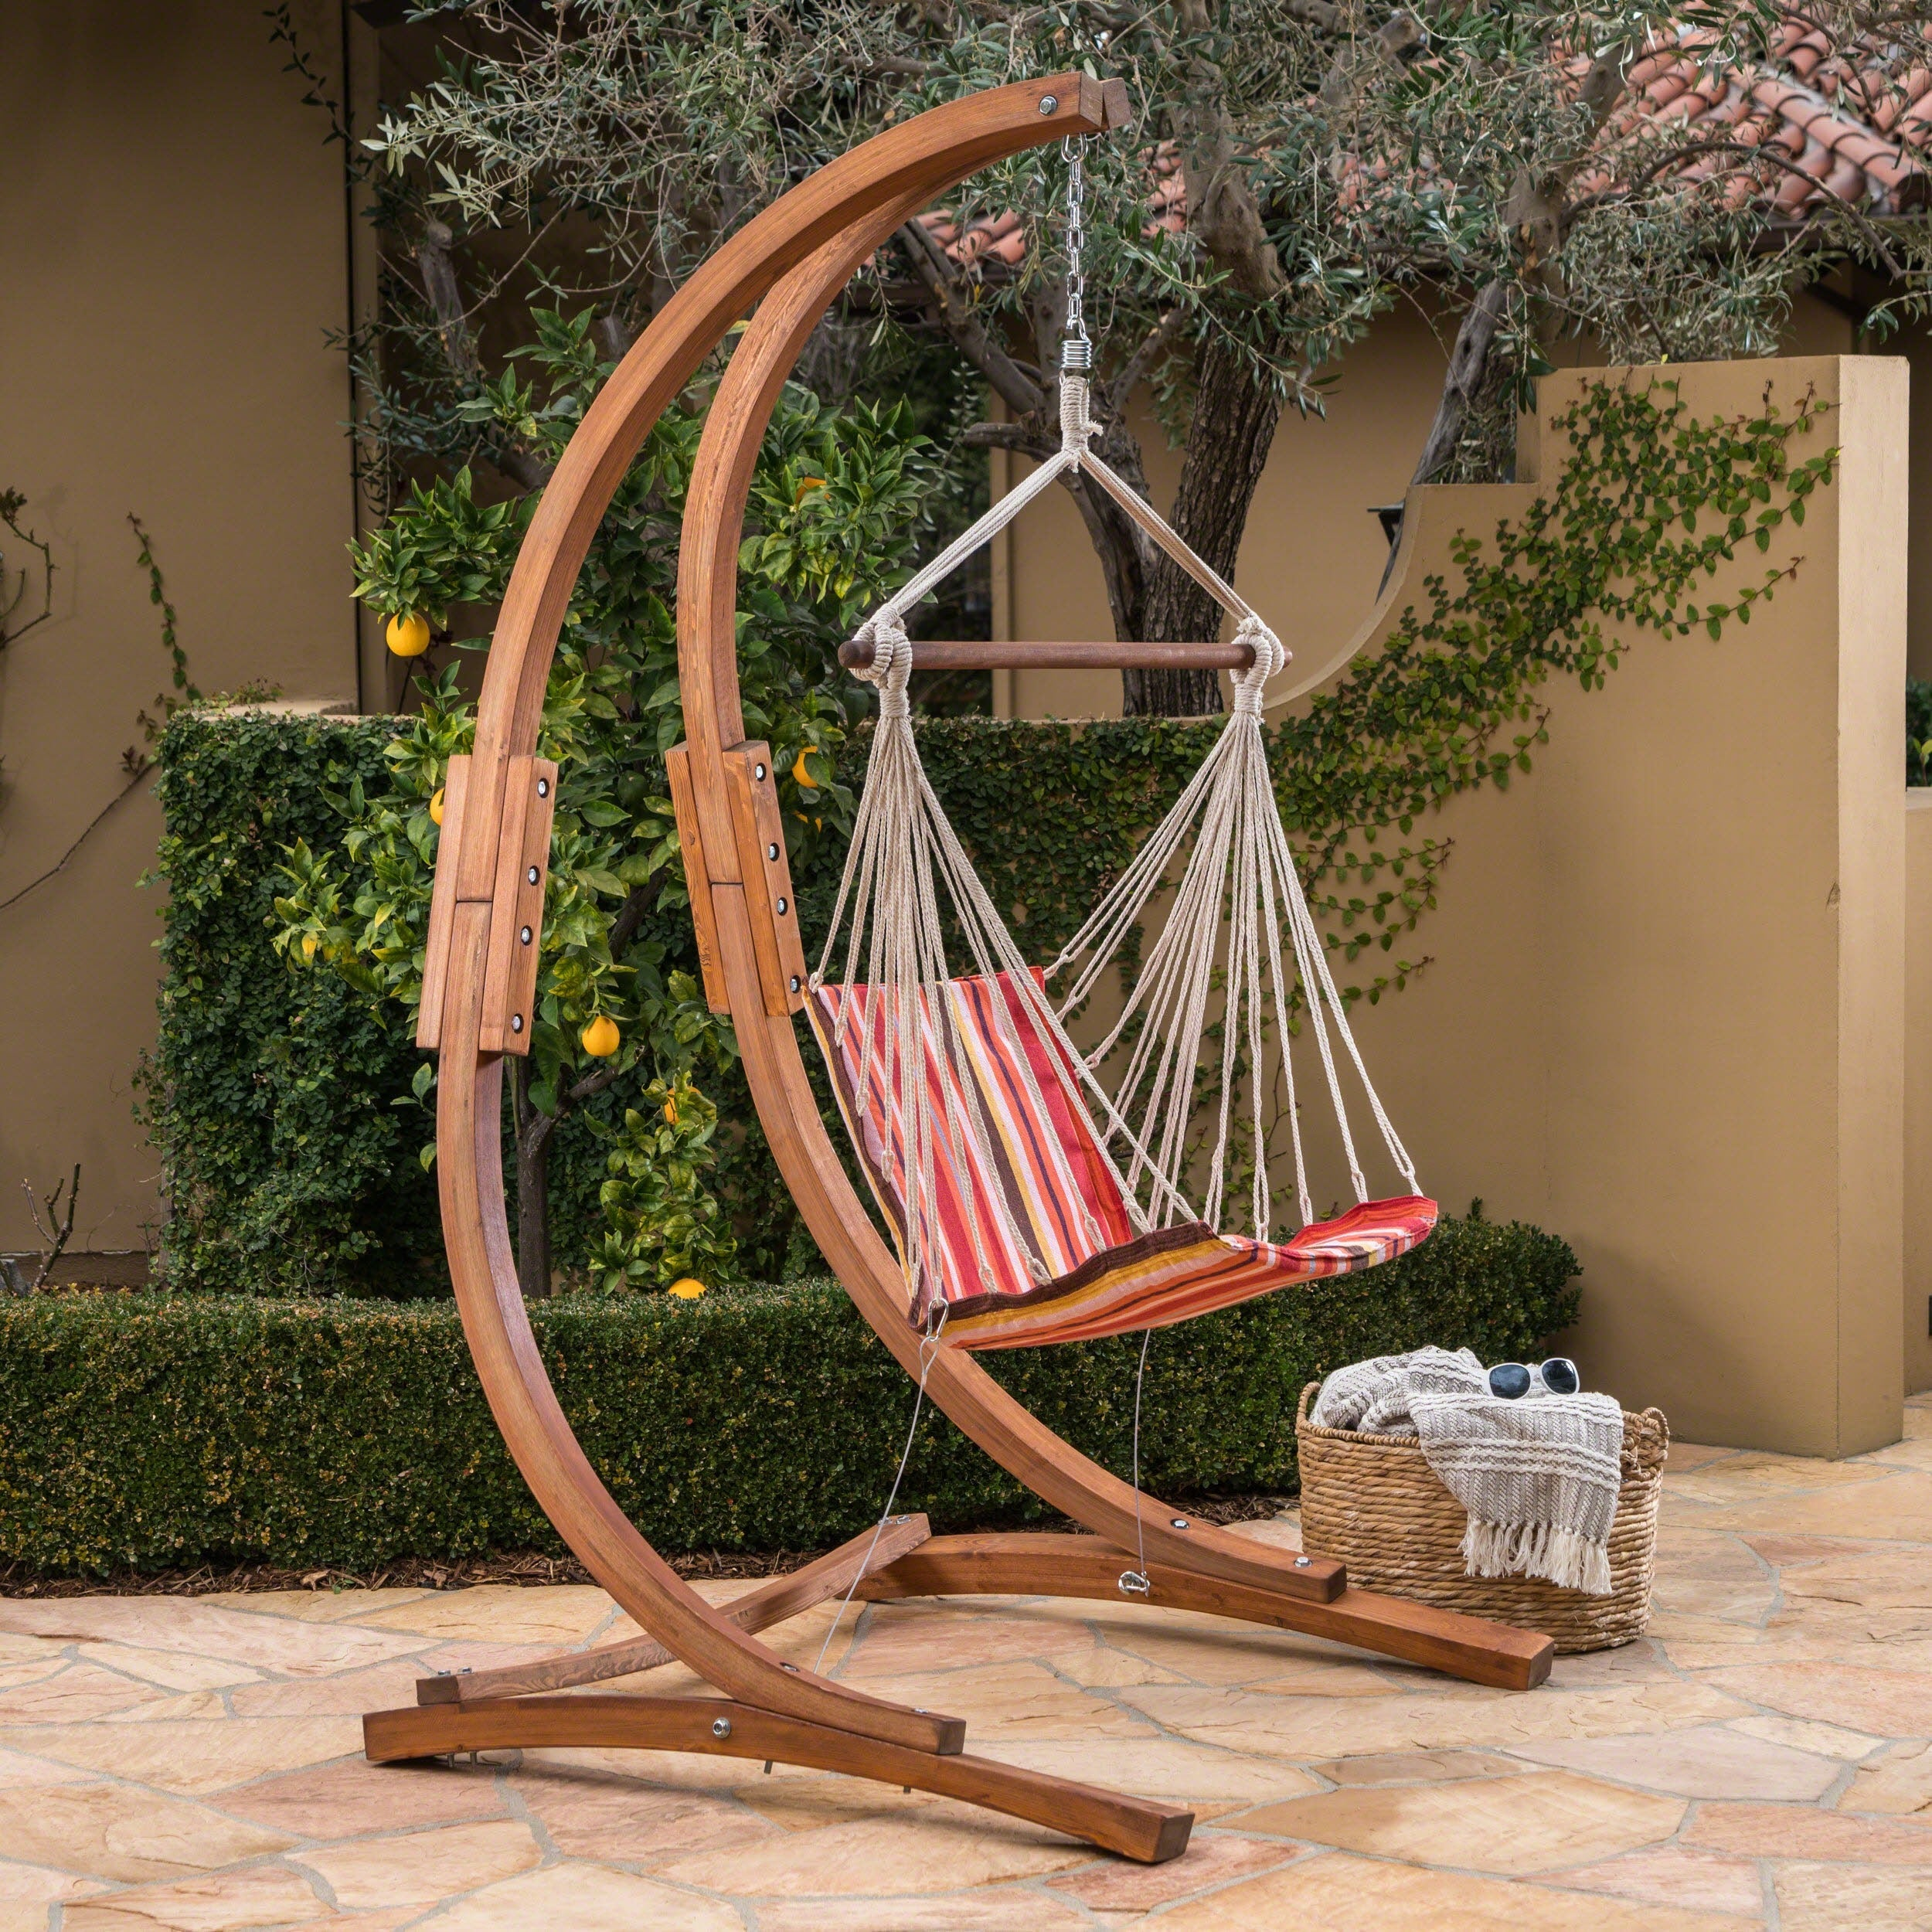 Shop Griffith Outdoor Larch Wood Hammock Chair Swing With Water